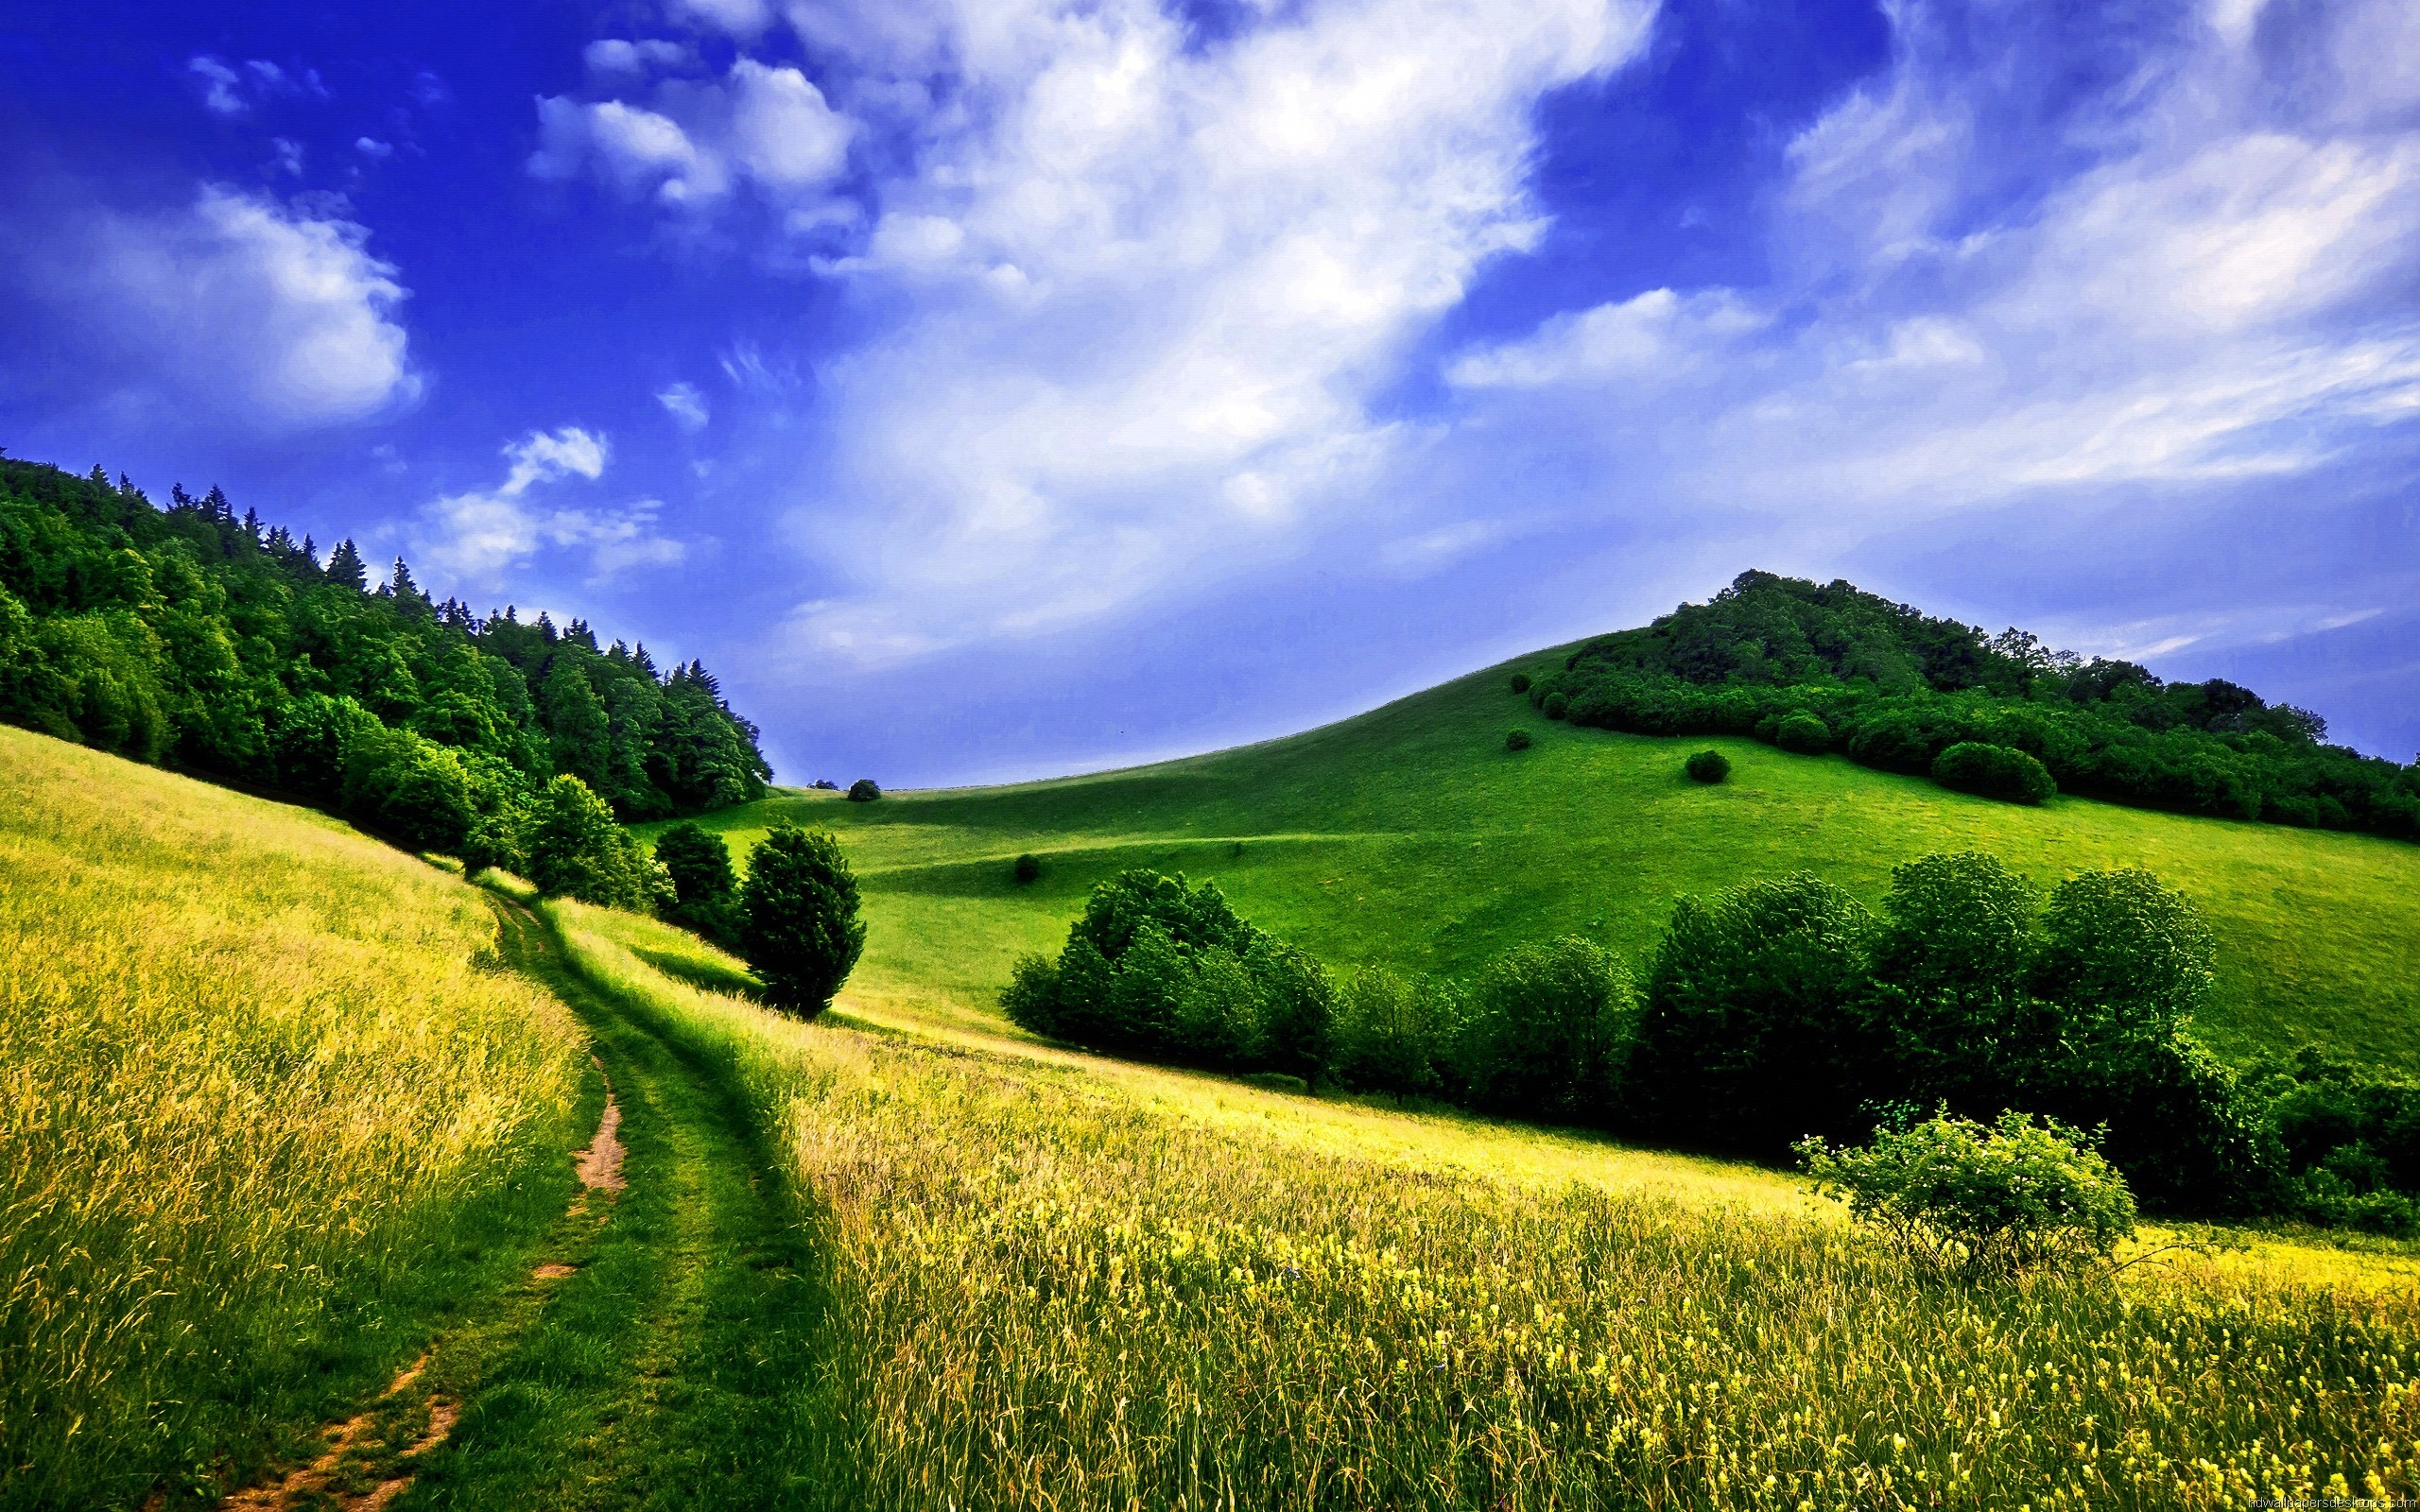 Nature Wallpapers Full Screen 76 Images